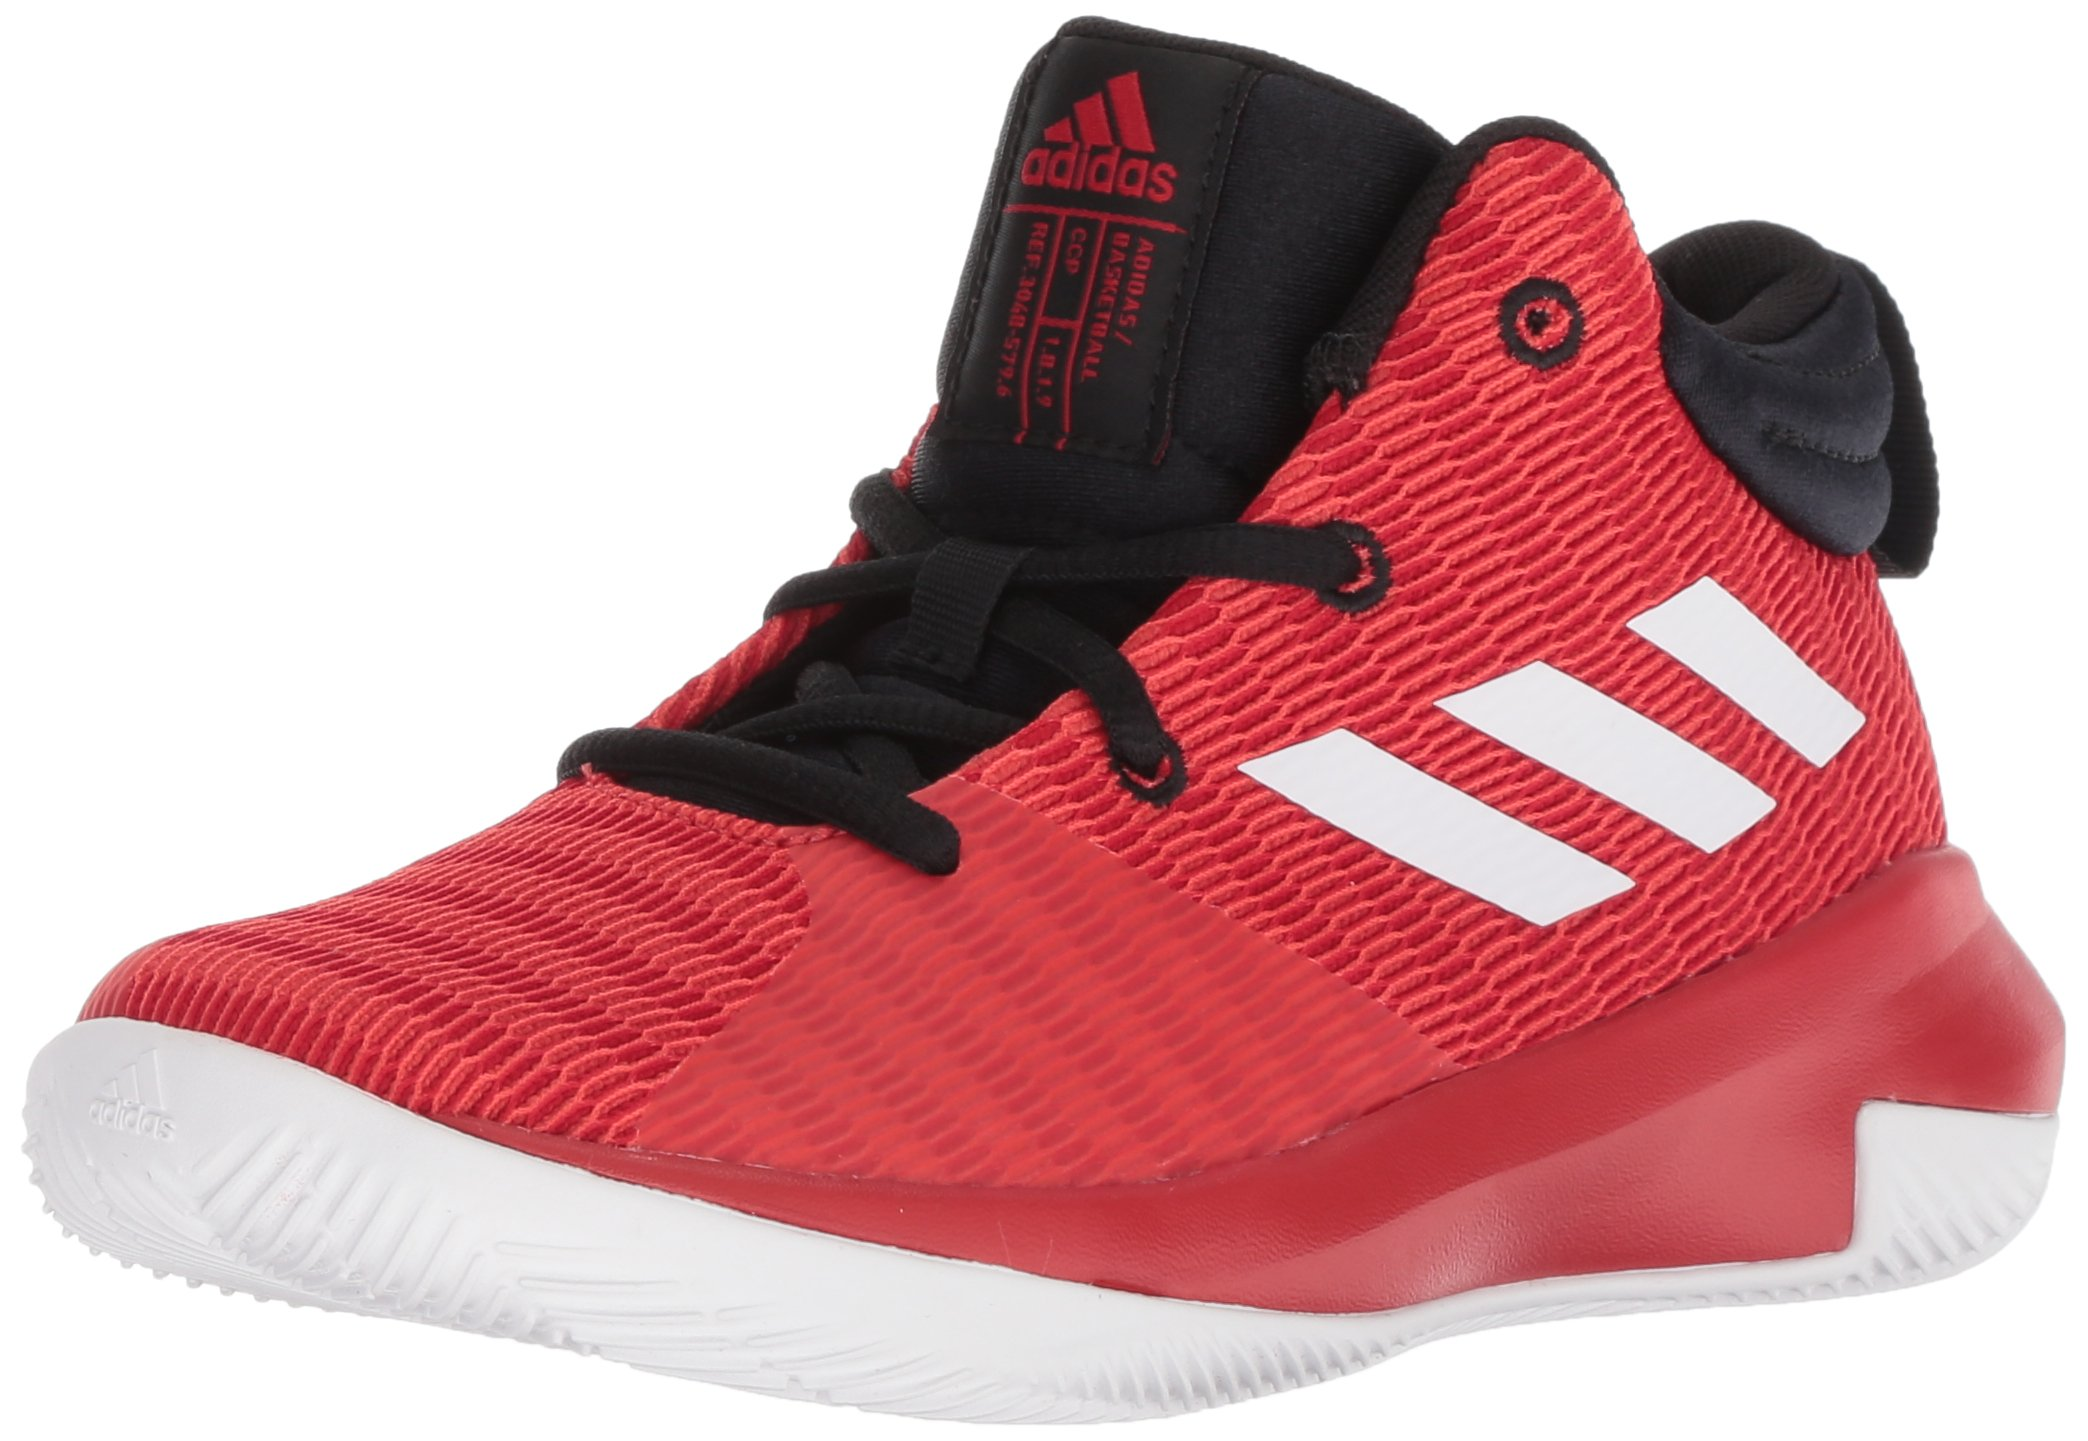 adidas Unisex Pro Elevate 2018 Basketball Shoe, Scarlet/White/Black, 7 M US Big Kid